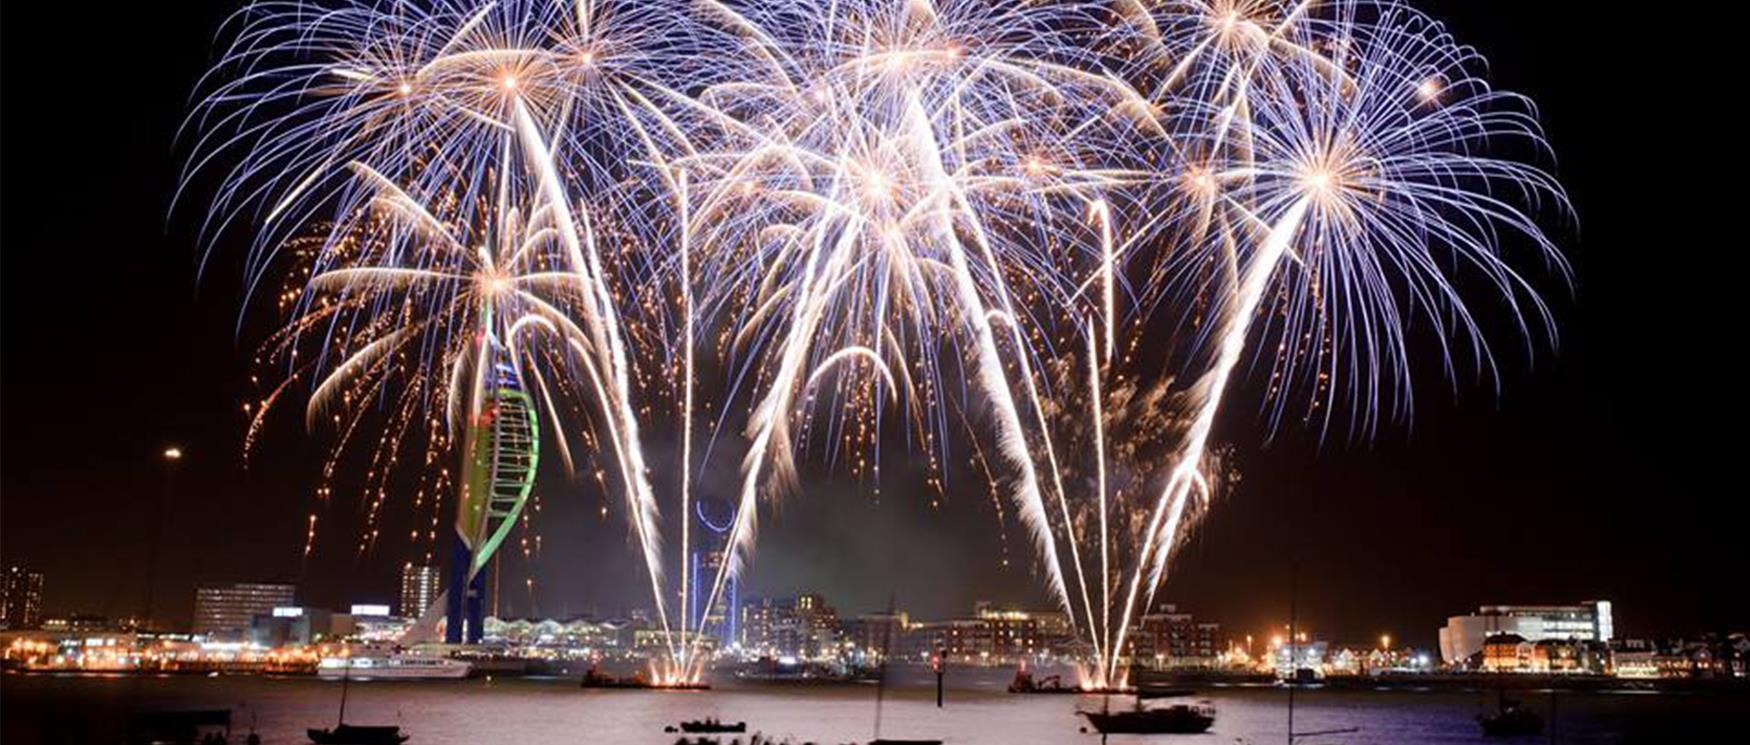 Bonfire and fireworks events in Hampshire - Visit Hampshire